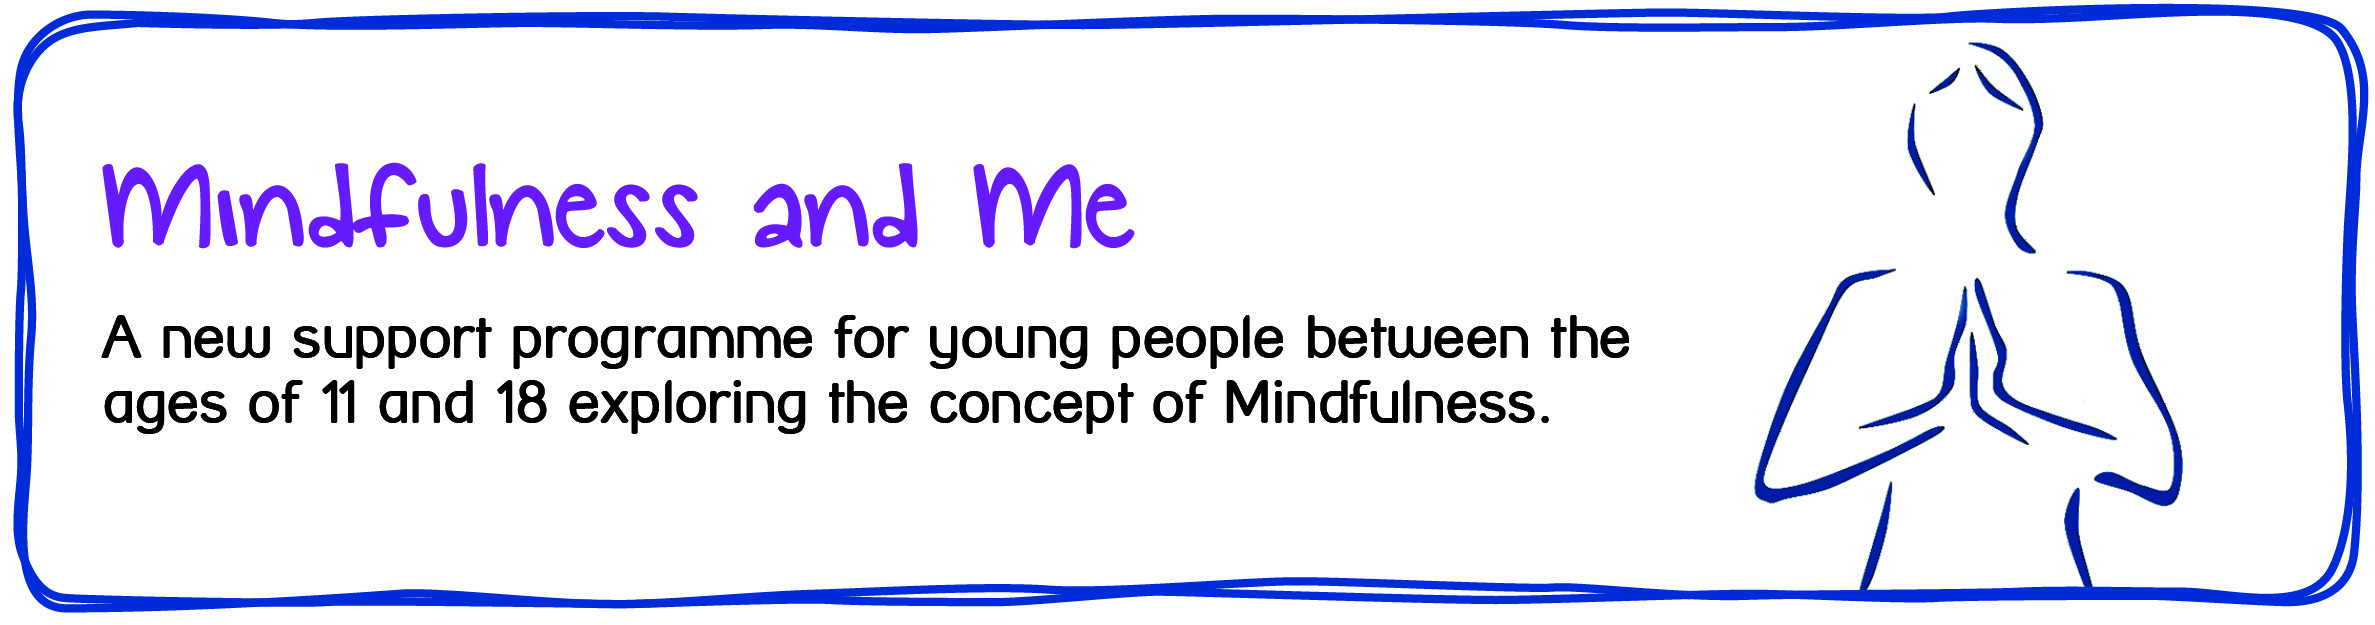 Mindfulness and Me - A new support programme for young people between the ages of 11 and 18 exploring the concept of Mindfulness